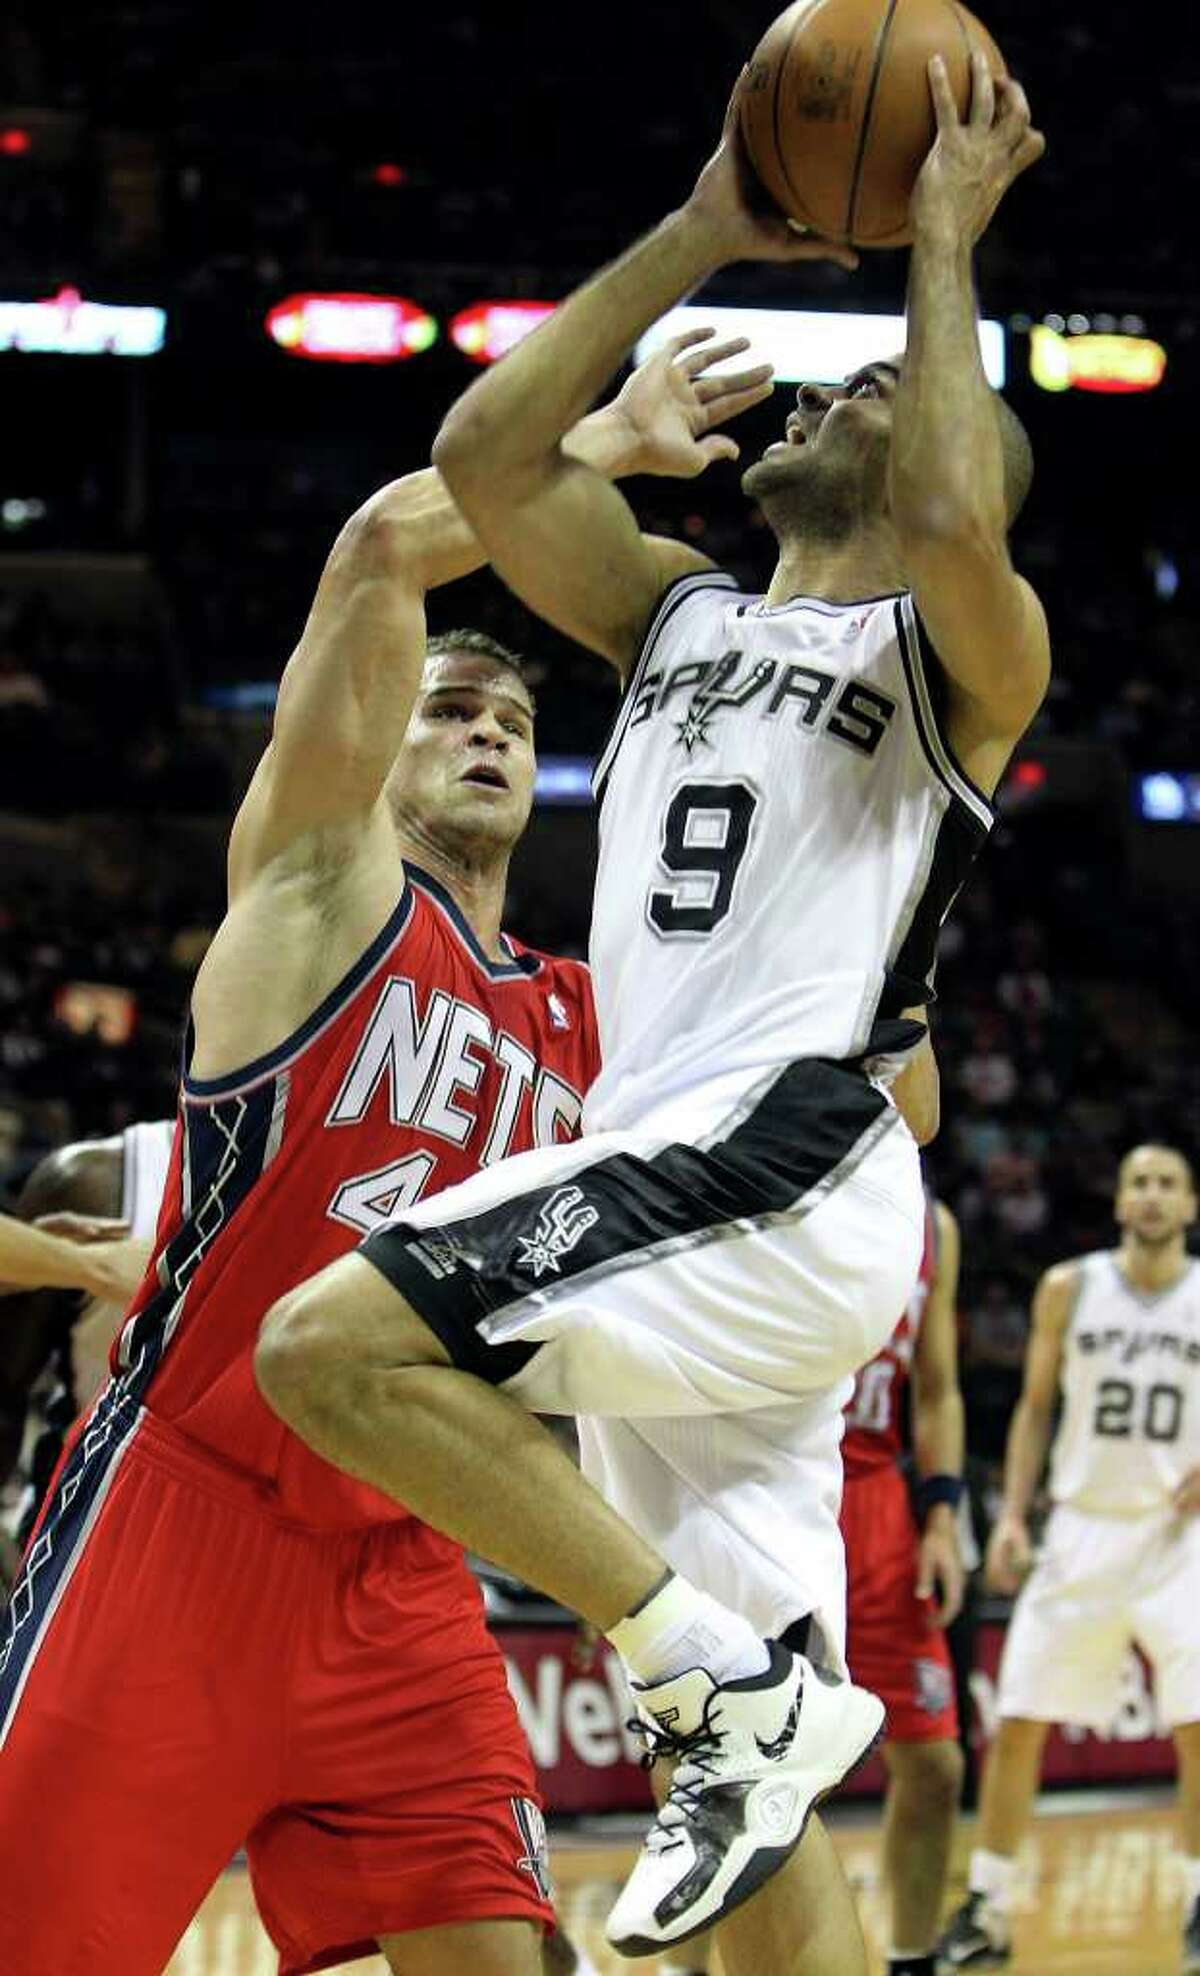 Spurs' Tony Parker (09) drives to the basket against New Jersey Nets' Kris Humphries (43) in the first half at the AT&T Center on Friday, Feb. 25, 2011. Kin Man Hui/kmhui@express-news.net